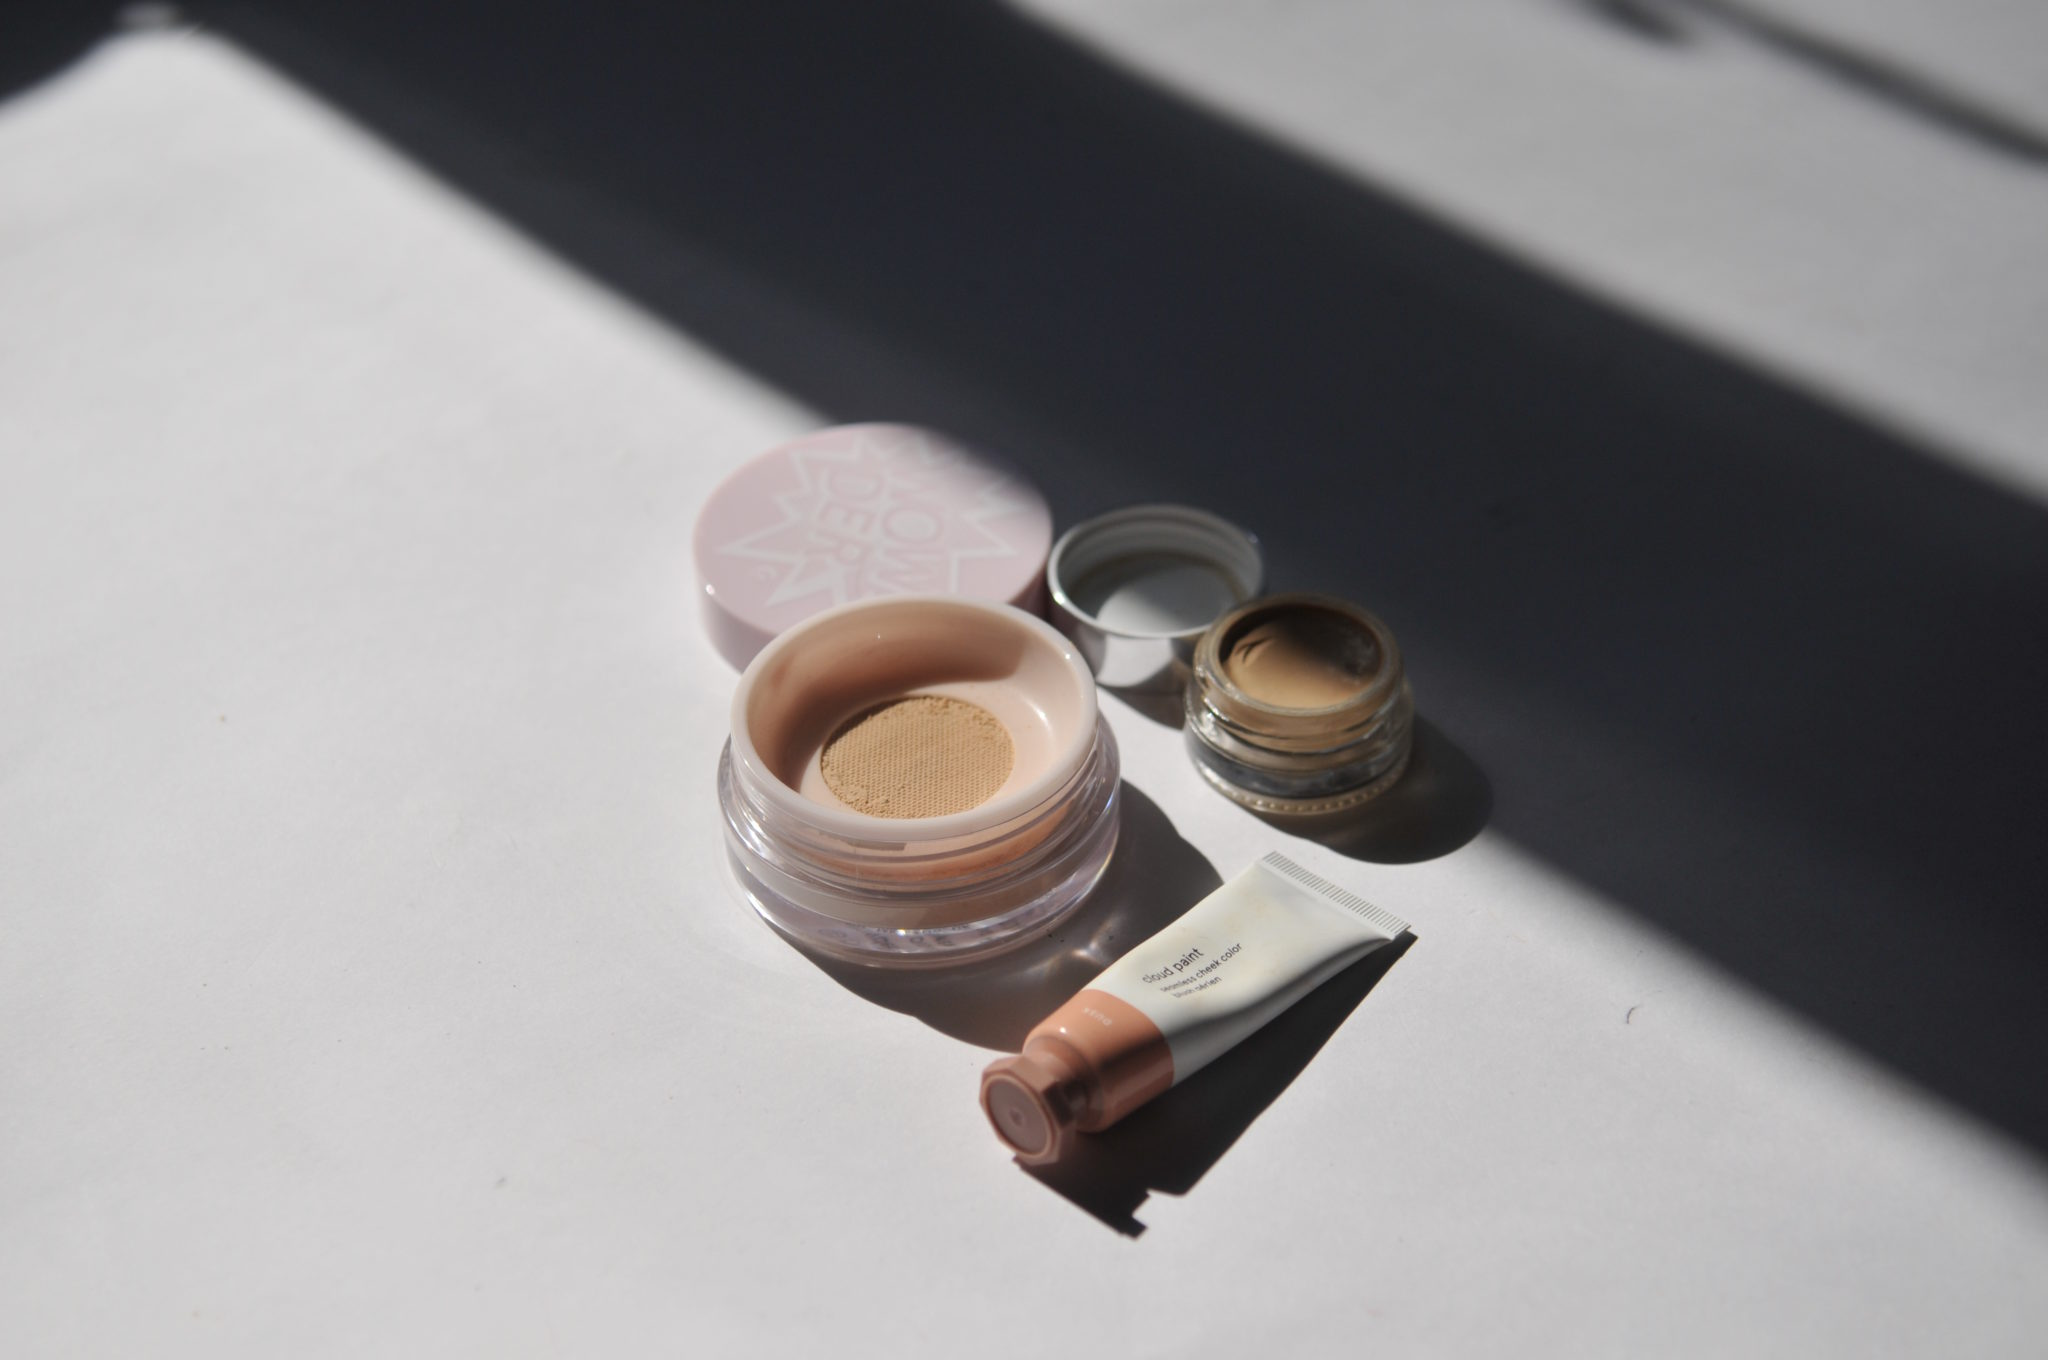 The Super Pack by Glossier #15